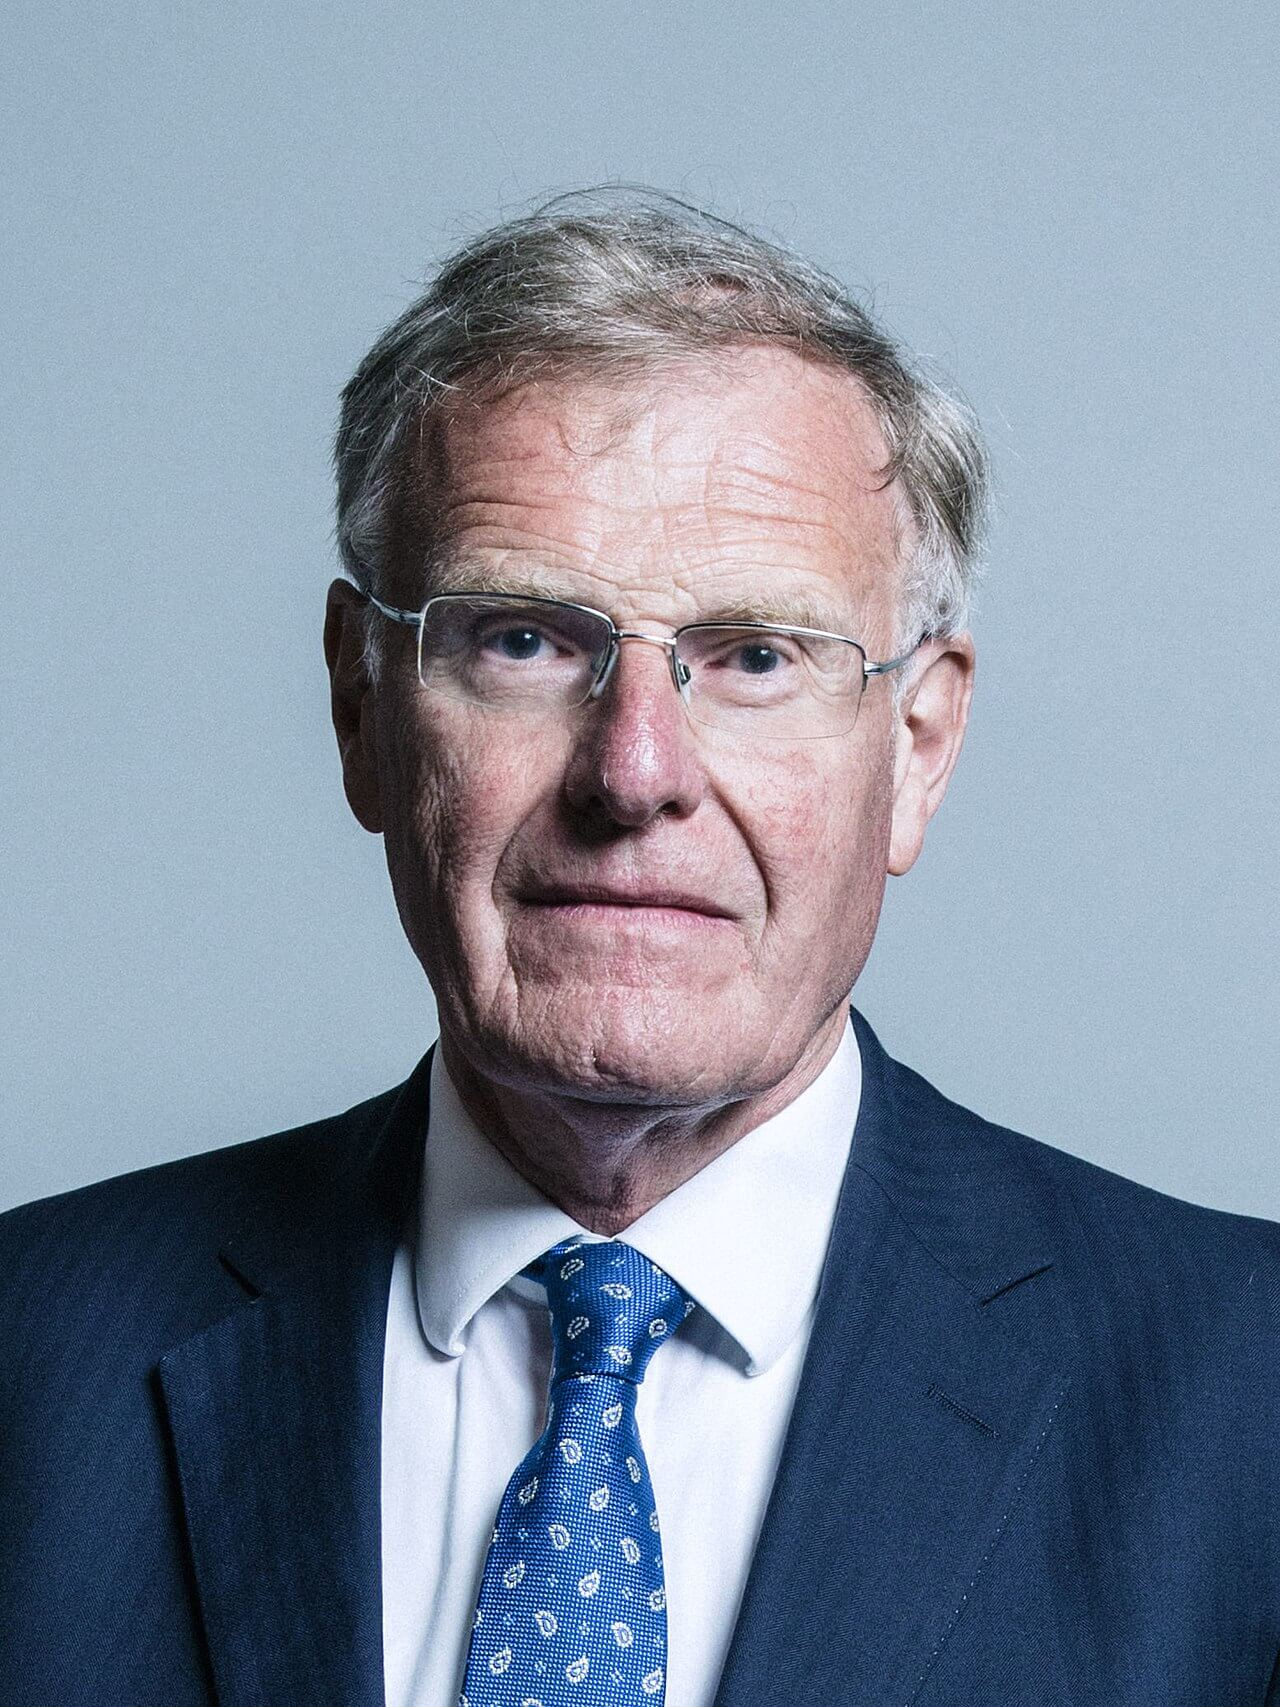 Conservative MP Sir Christopher Chode